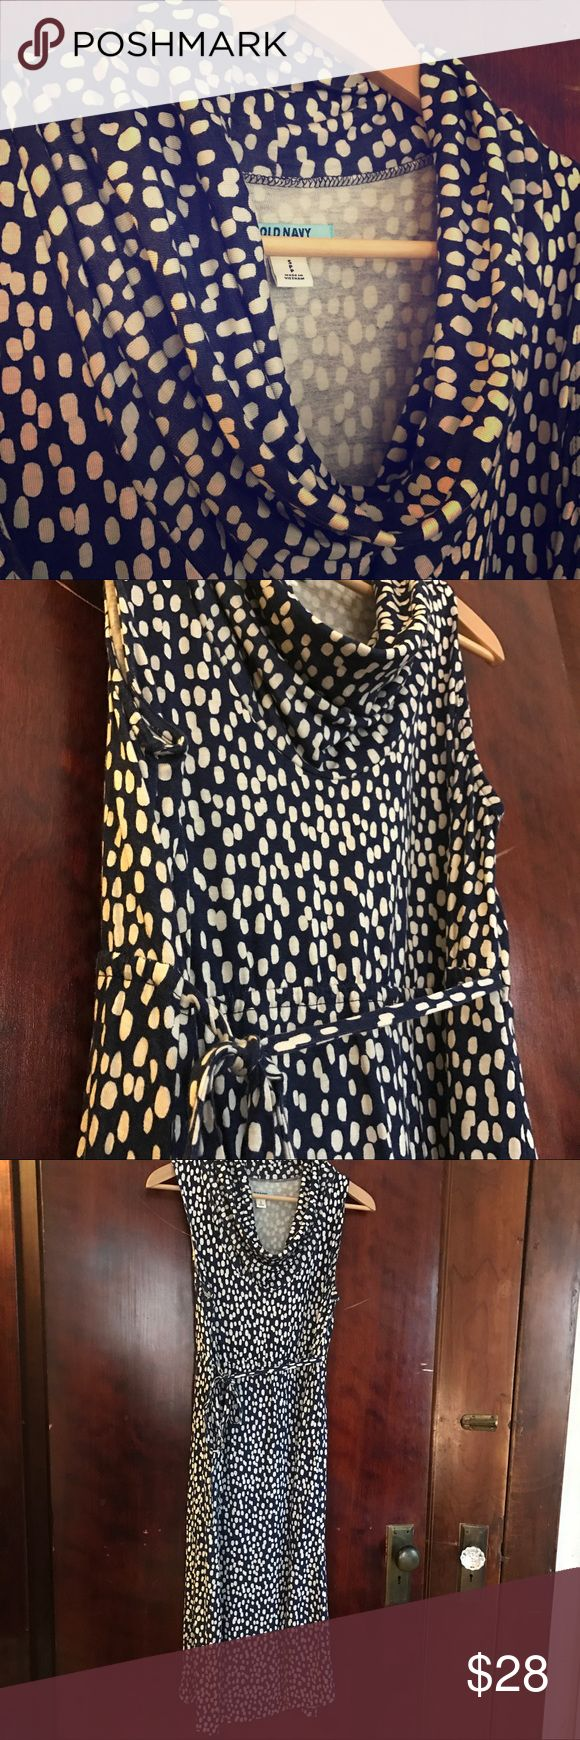 Old navy maternity dress. White dots on navy dress Adorable summer maternity dress with cowl neck. Pair with or without a cardigan. Hits just at the knee. Old Navy Dresses